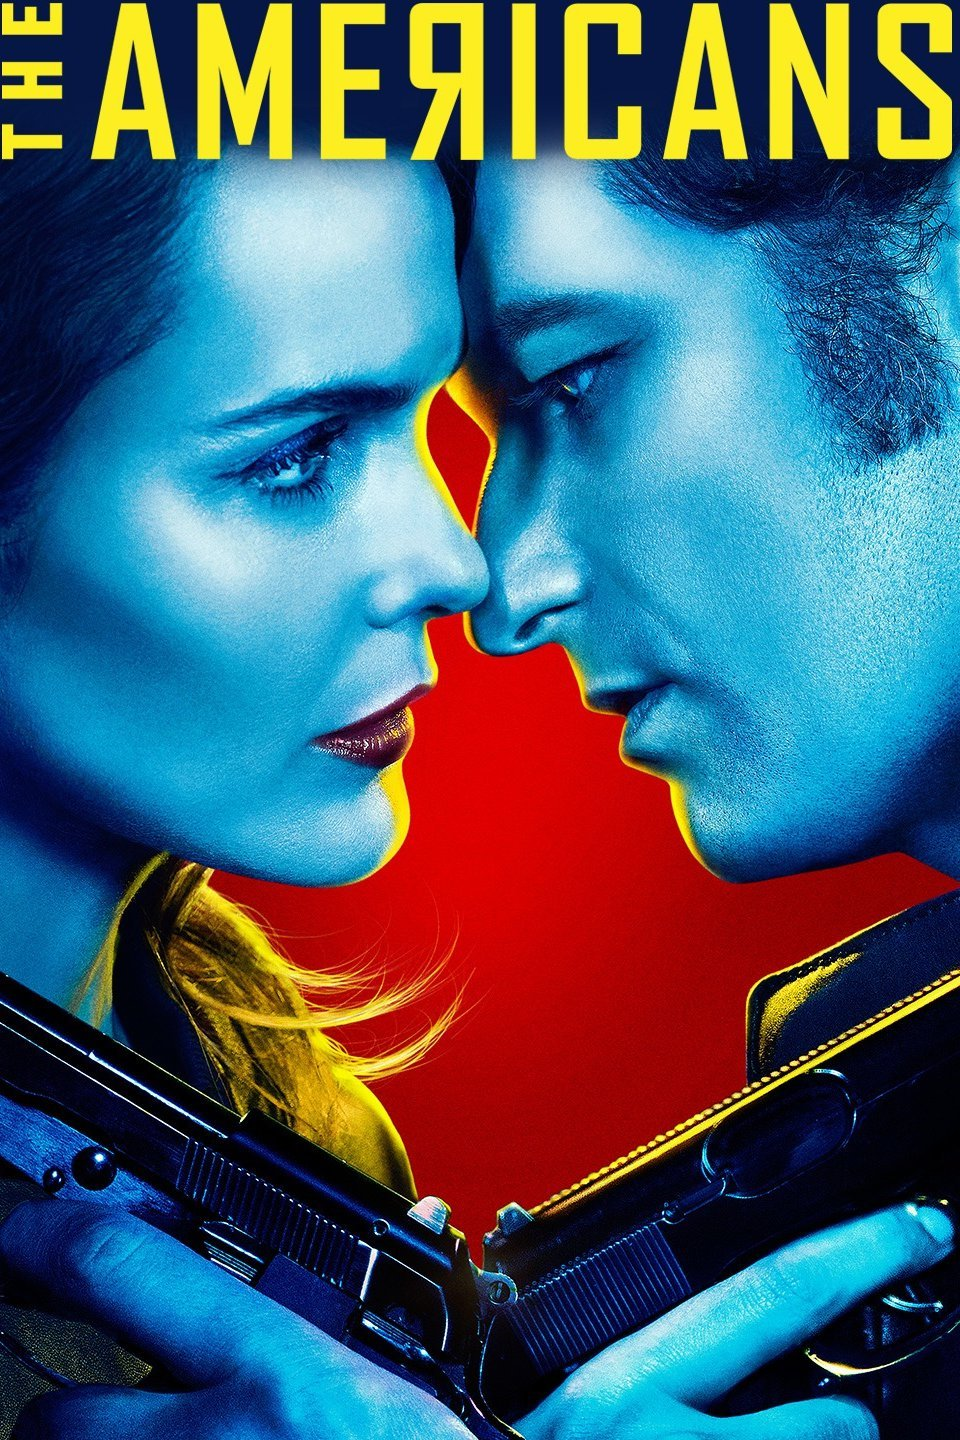 The Americans S04E07 HDTV x264 245 MB